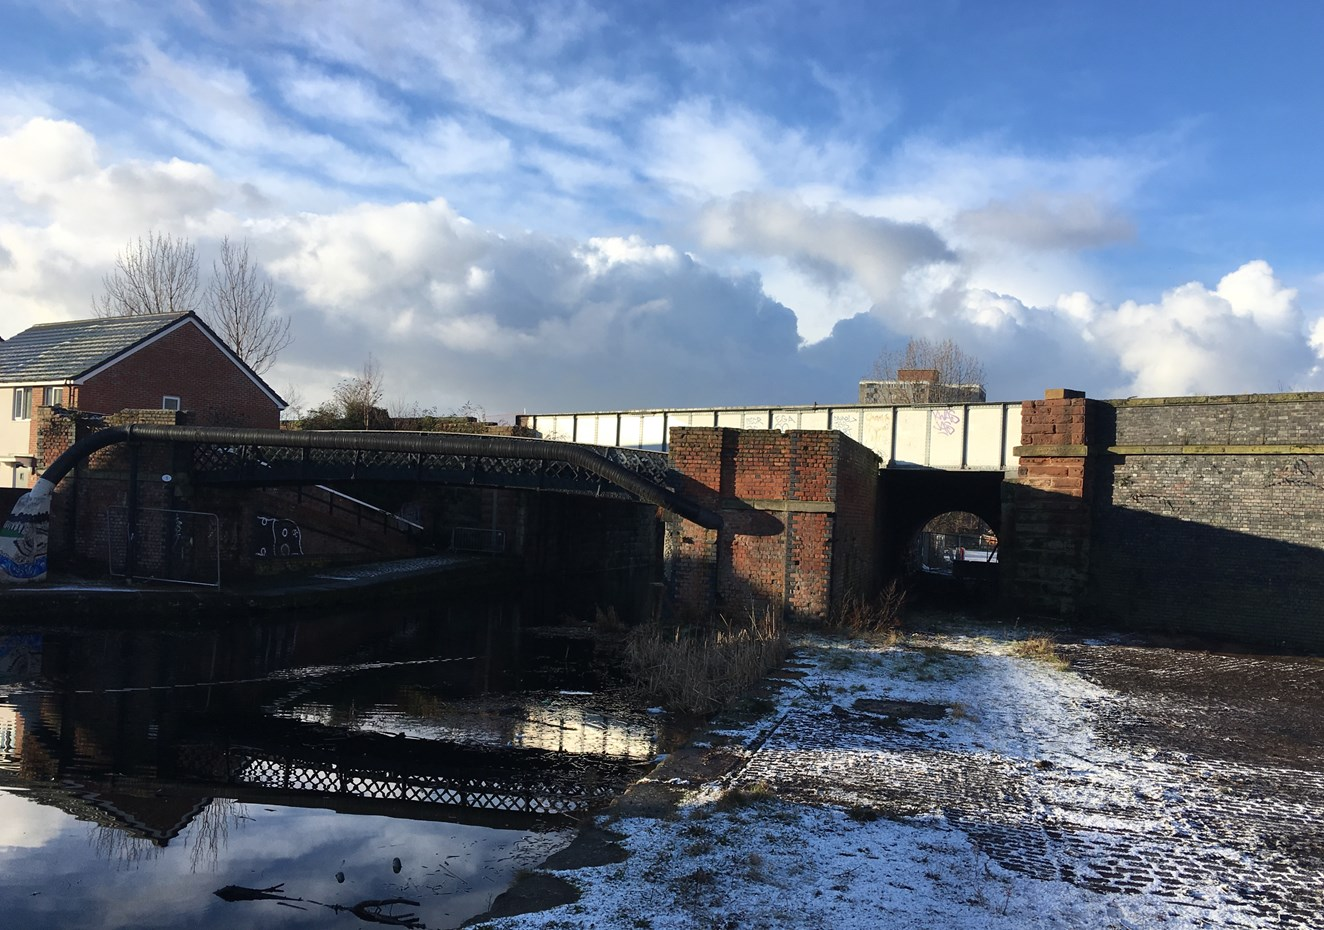 Coordinated Merseyside railway upgrades planned during Southport line closure: Leeds Liverpool Canal railway bridge